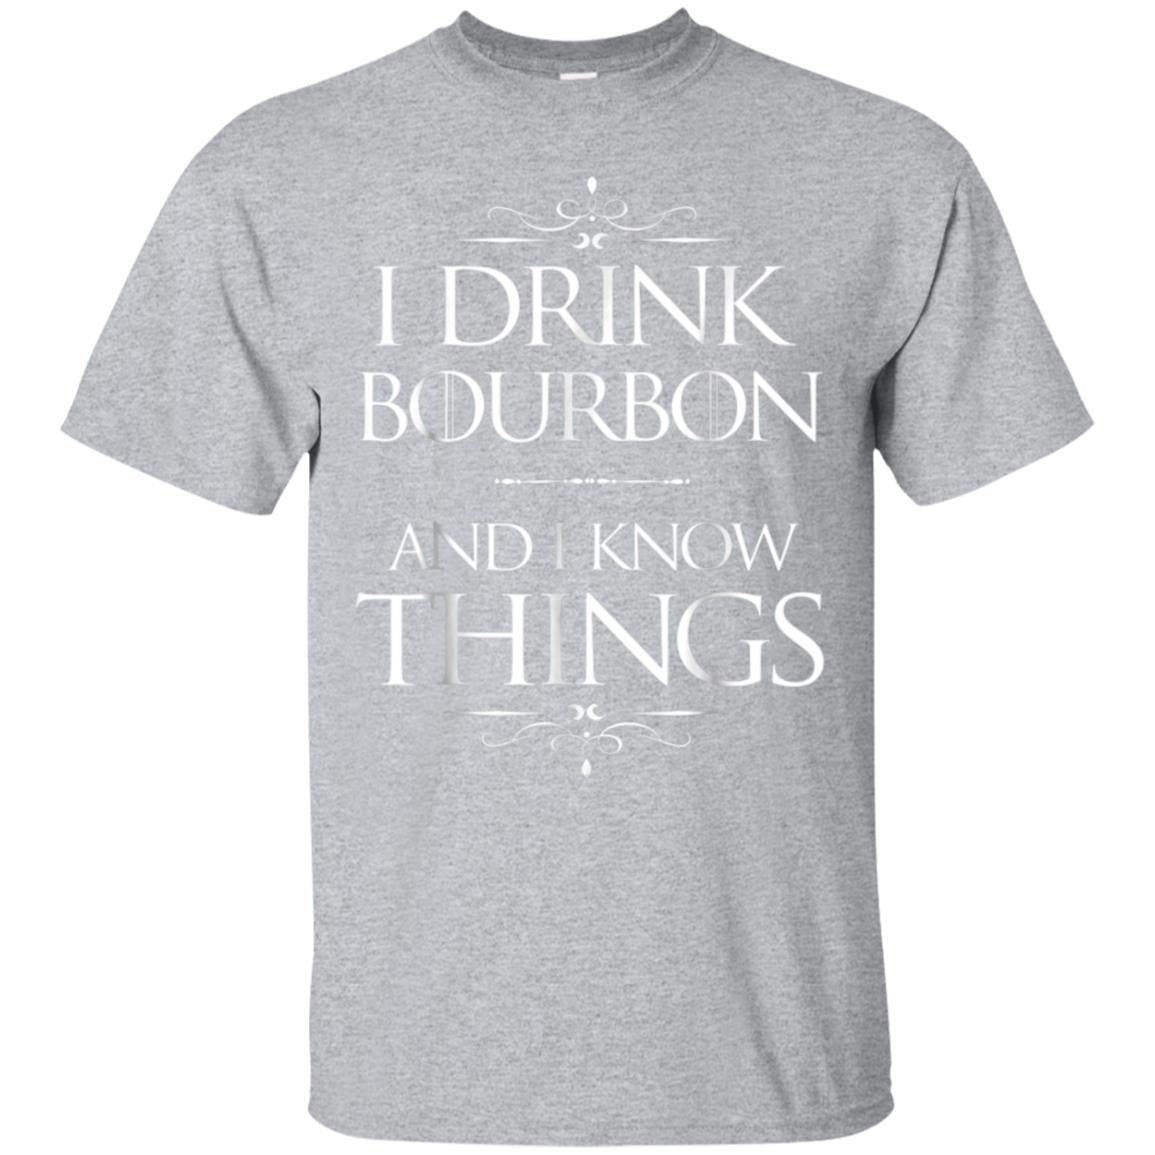 I Drink Bourbon and I know Things Funny Alcohol T-Shirt 99promocode